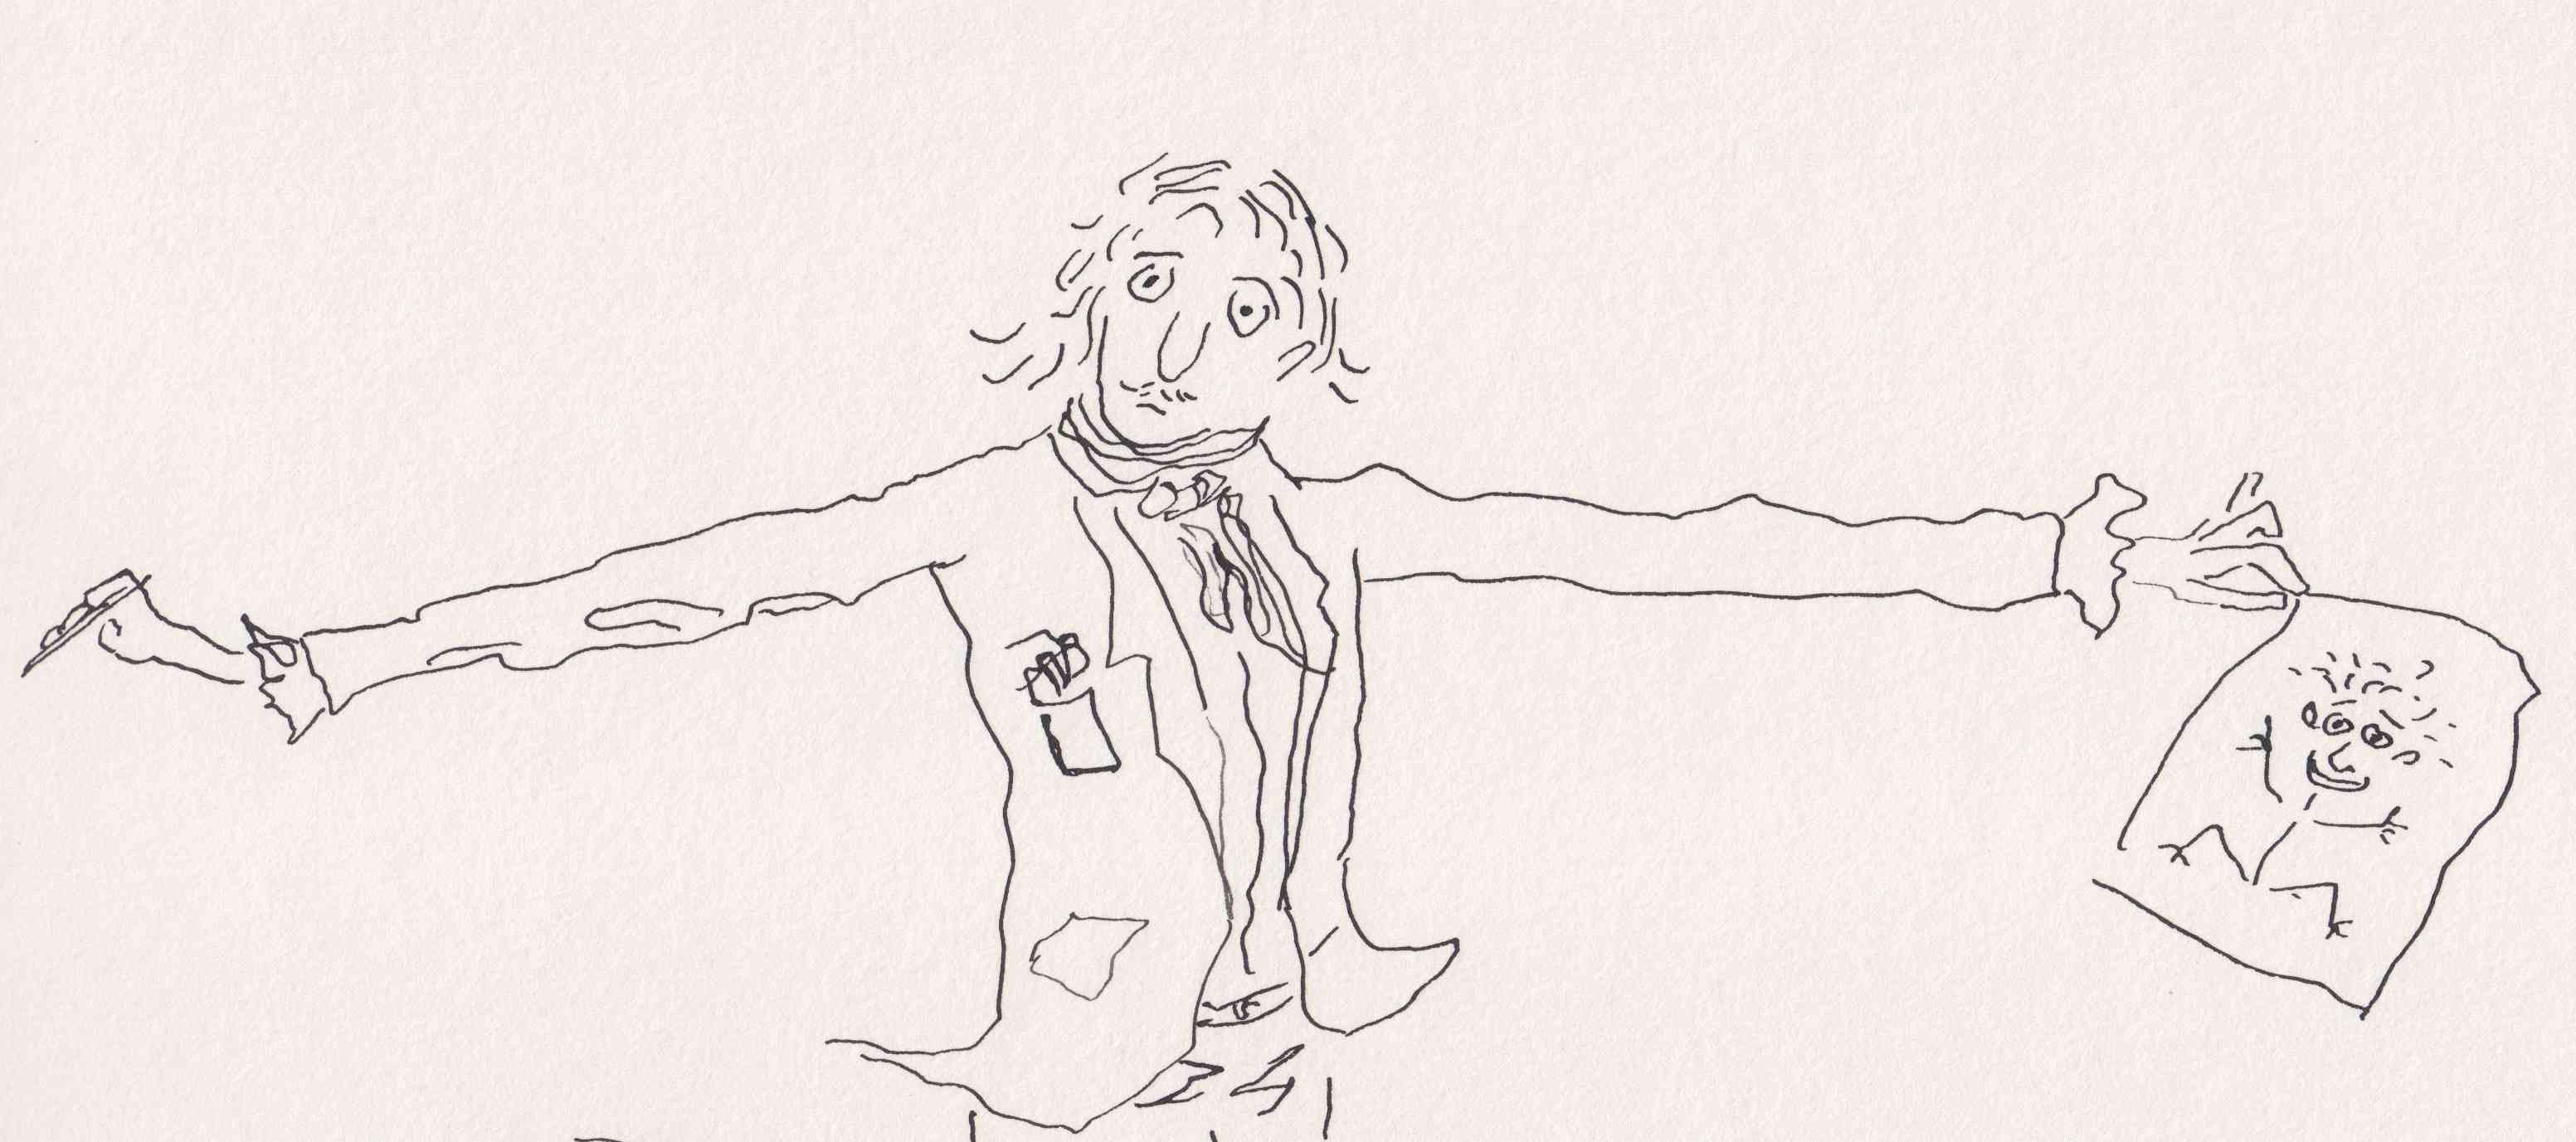 How to draw like quentin blake - Dessin de prof ...